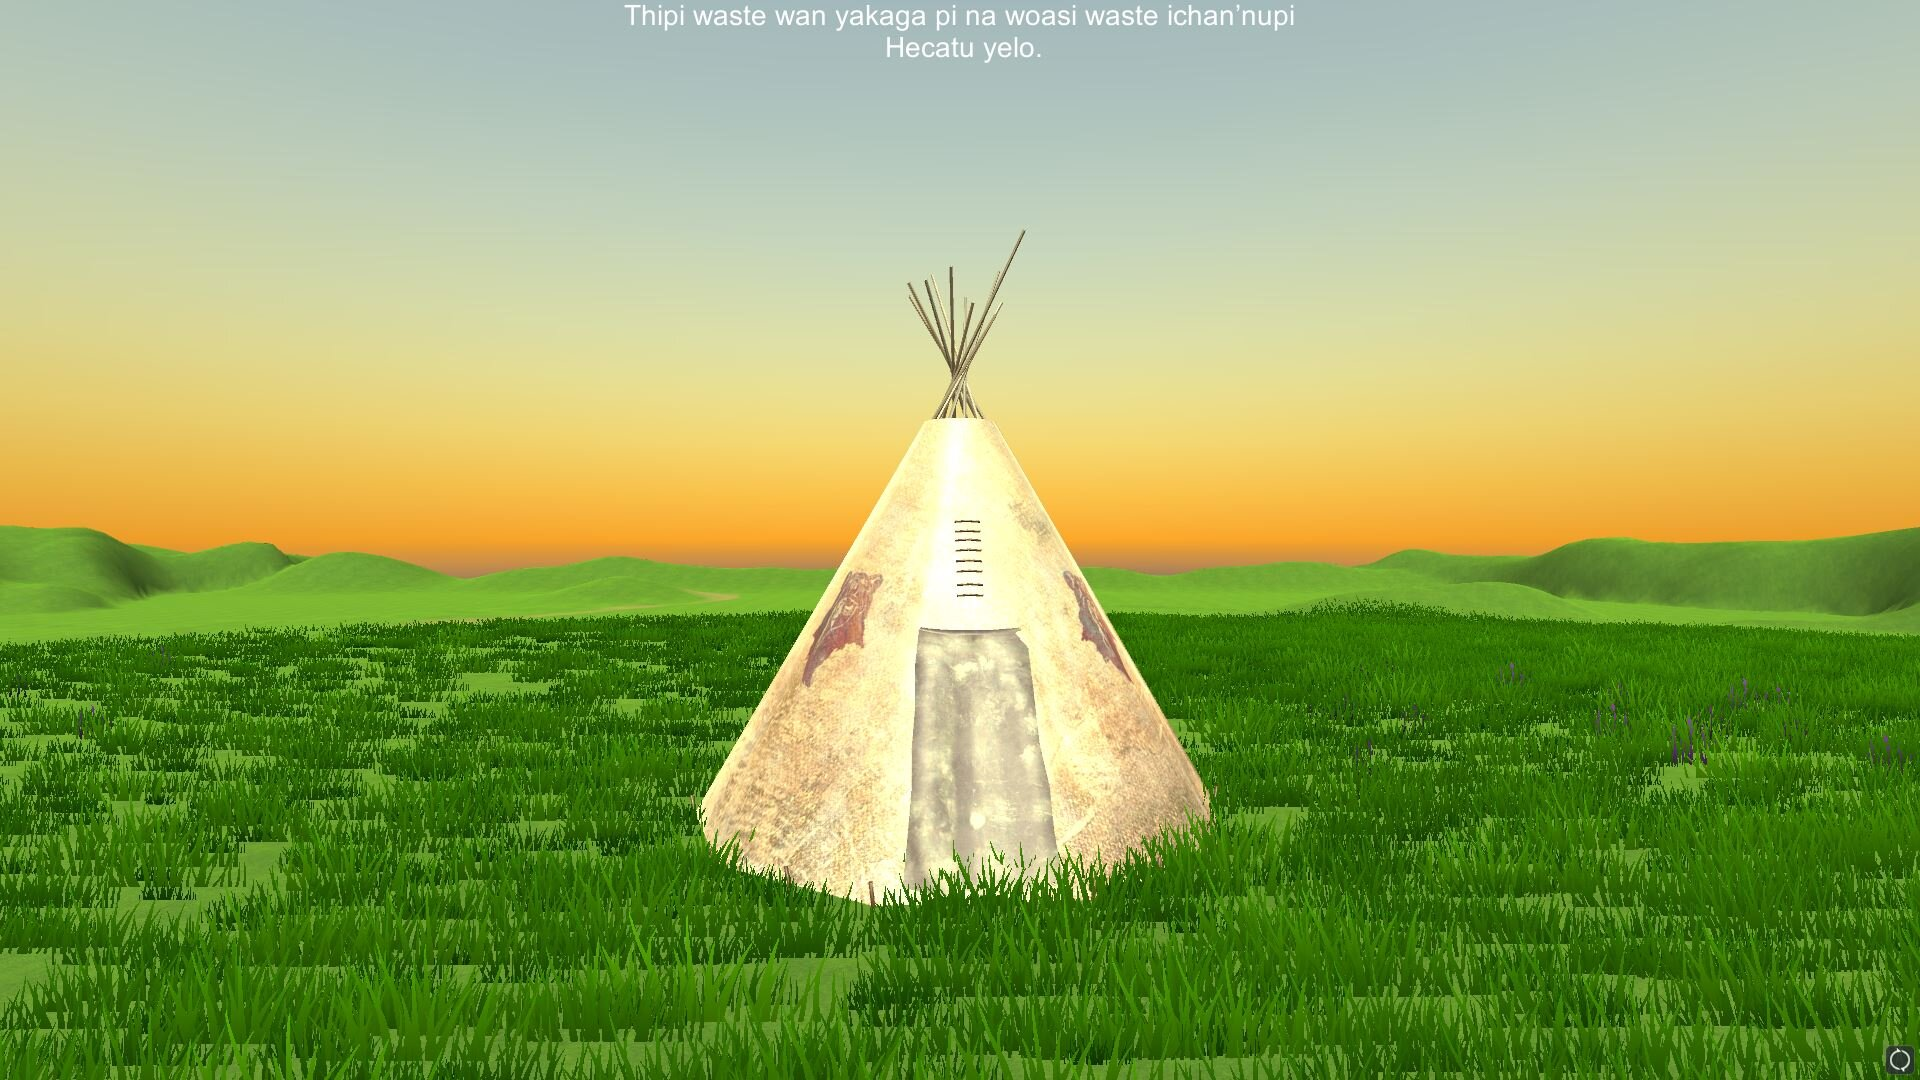 Tipi Kaga - Artist: Carl Petersen (Oohe Numpa Lakota, Cheyenne River Sioux Tribe), Megan Zephier (Yankton Sioux Tribe), James Sierra (Oglala Sioux Tribe)USA   2019   GameAll AgesLearn the steps of constructing a traditional Lakota Tipi (Tent Home) in Lakota while listening to fluent Lakota speakers. Learn Lakota through listening to the conversations found in the everyday of traditional camp life.Northern Plains Games is a Game Design Studio founded by Carl Petersen, a member of the Oohe Numpa Band of Lakota (Cheyenne River Sioux Tribe), to create games in the Lakota Language. Carl is a Game Design Student at Dakota State University, who grew up on the Cheyenne River Indian Reservation which shares geography with the U.S. State of South Dakota.